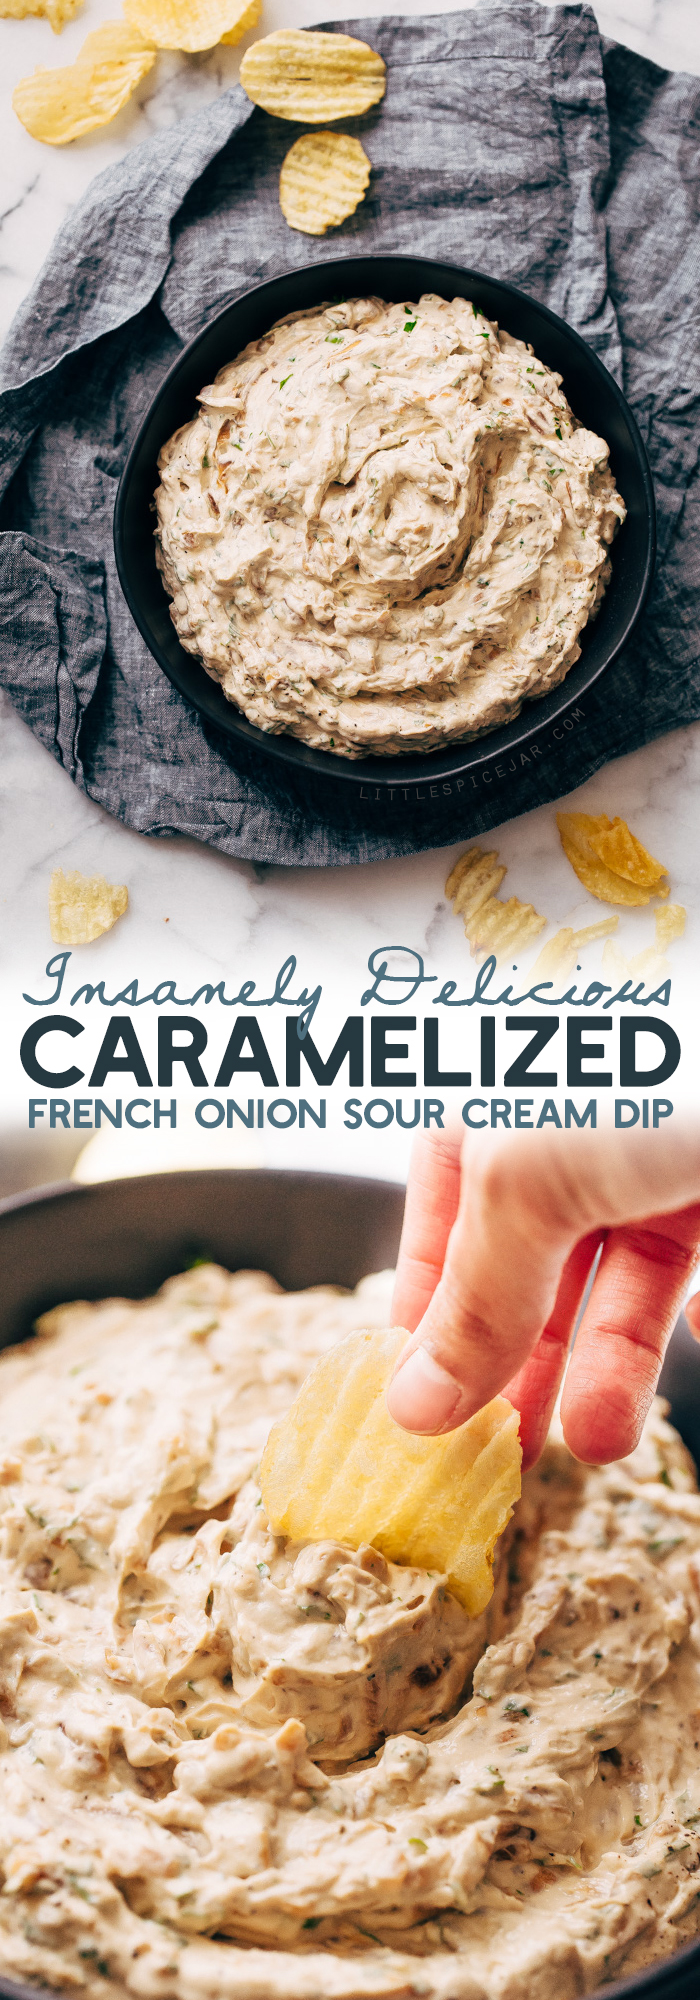 Caramelized Onion Dip - a simple dip that you can make ahead for parties and gatherings! Perfect for New Years Eve or any celebration! #caramelizedoniondip #frenchoniondip #oniondip #frenchcaramelizedoniondip | Littlespicejar.com